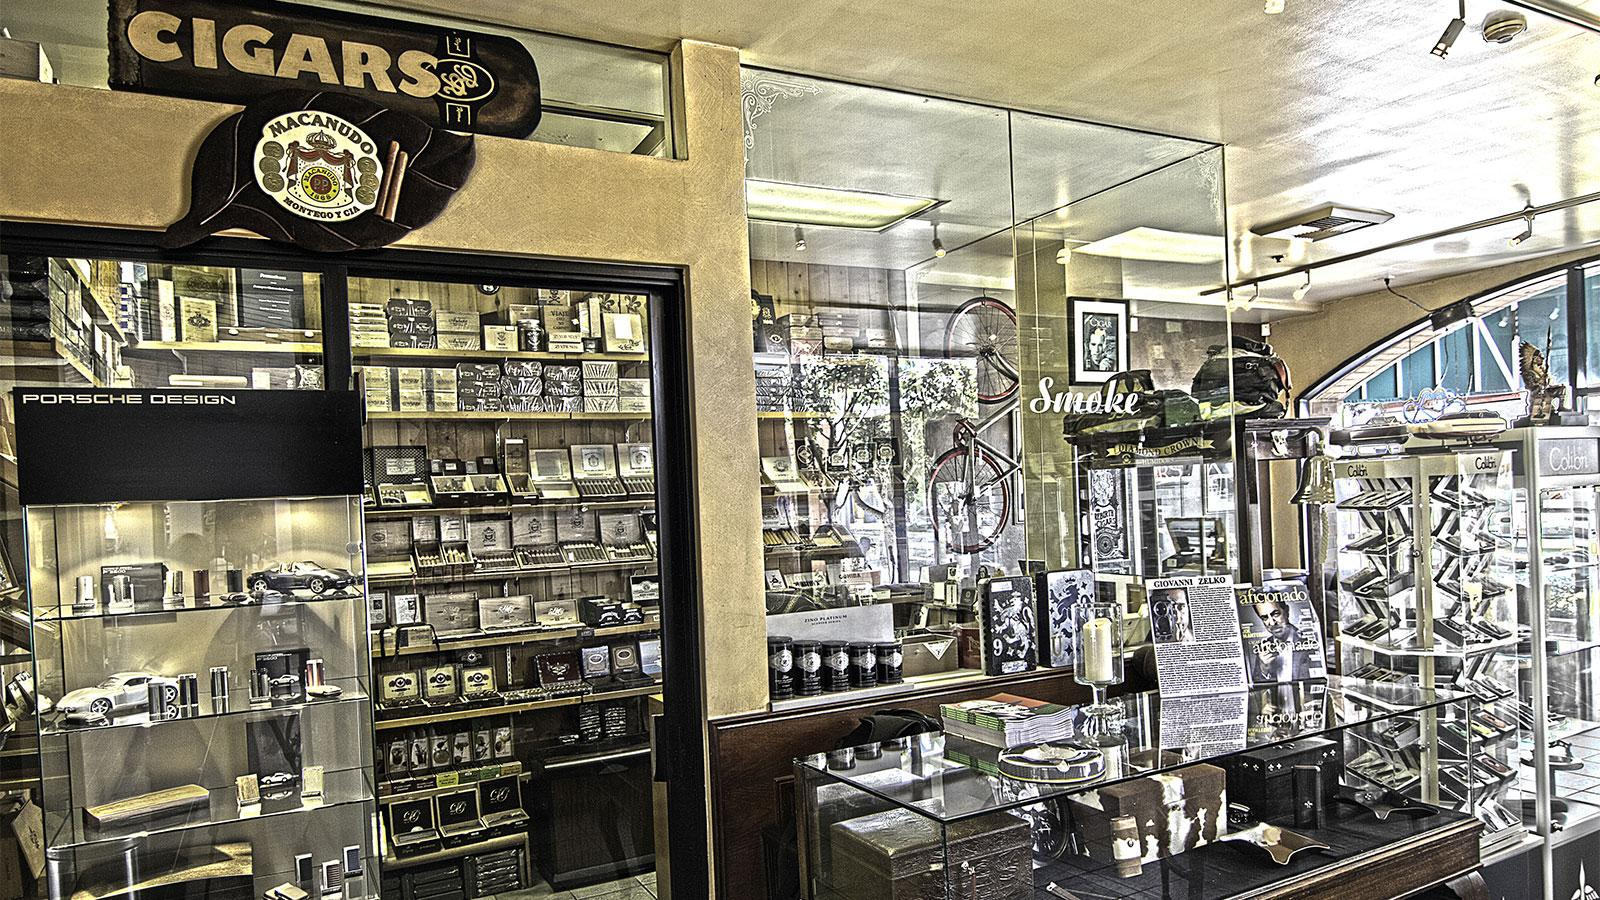 The humidor is visible from anywhere in the store and holds a selection of fine cigars brands such as Liga Privada, Tatuaje and Joya de Nicaragua.